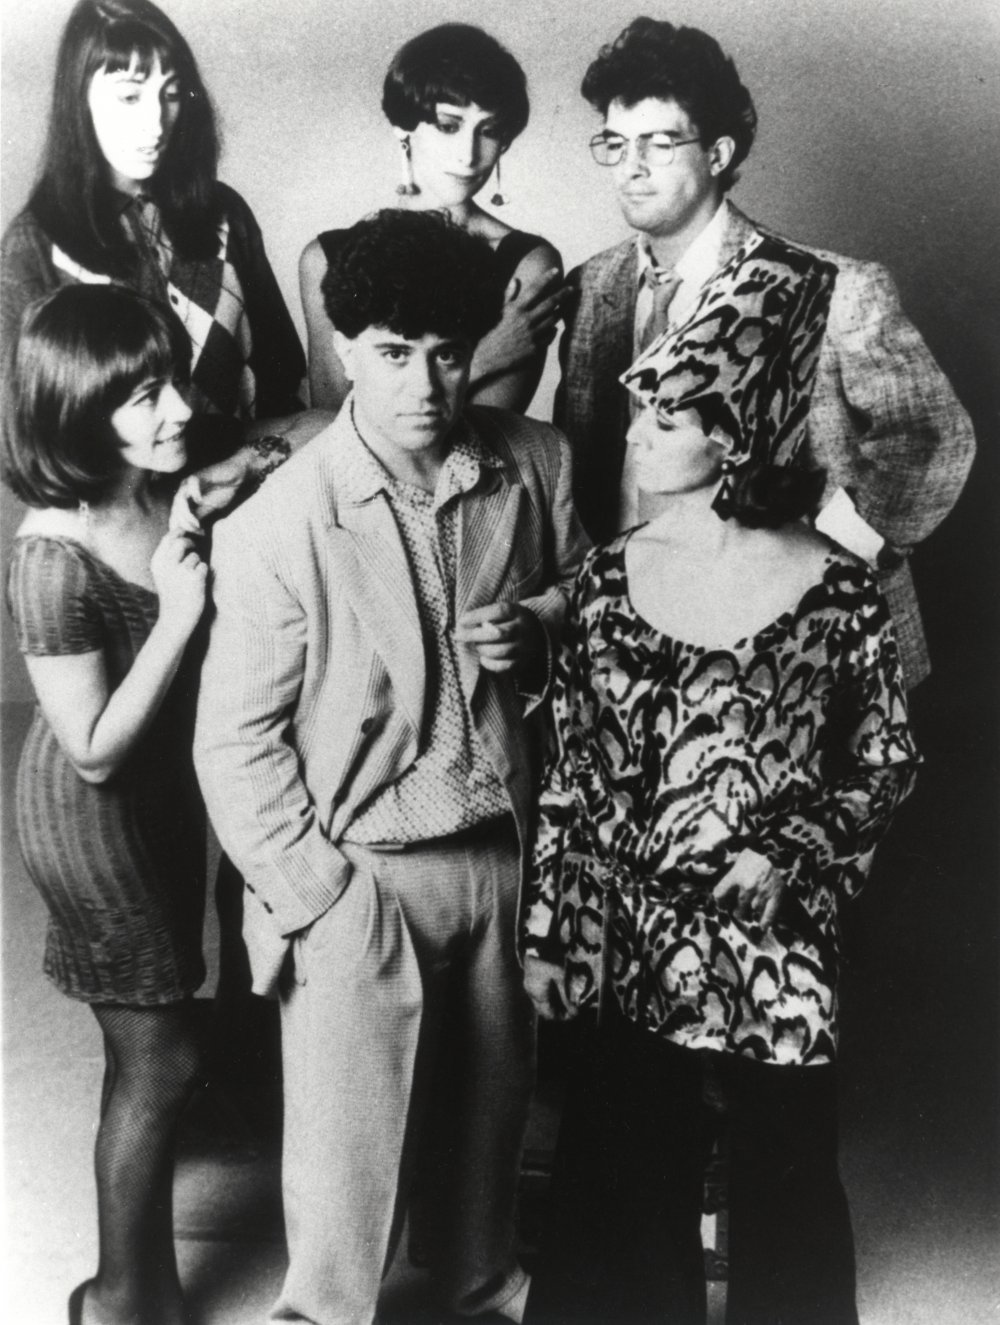 Pedro Almodóvar with the cast of Women on the Verge of a Nervous Breakdown (1988)